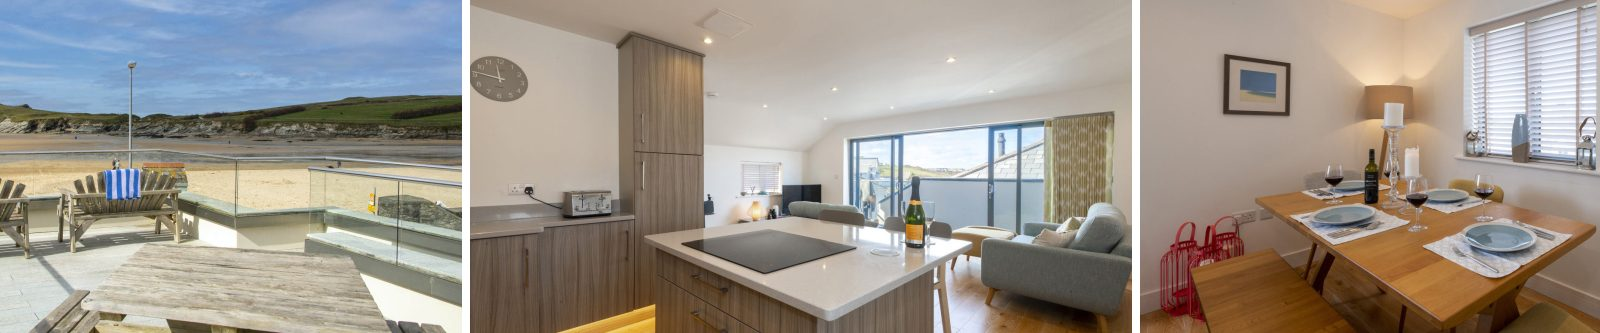 sun terrace, kitchen and lounge view, set table in dining area